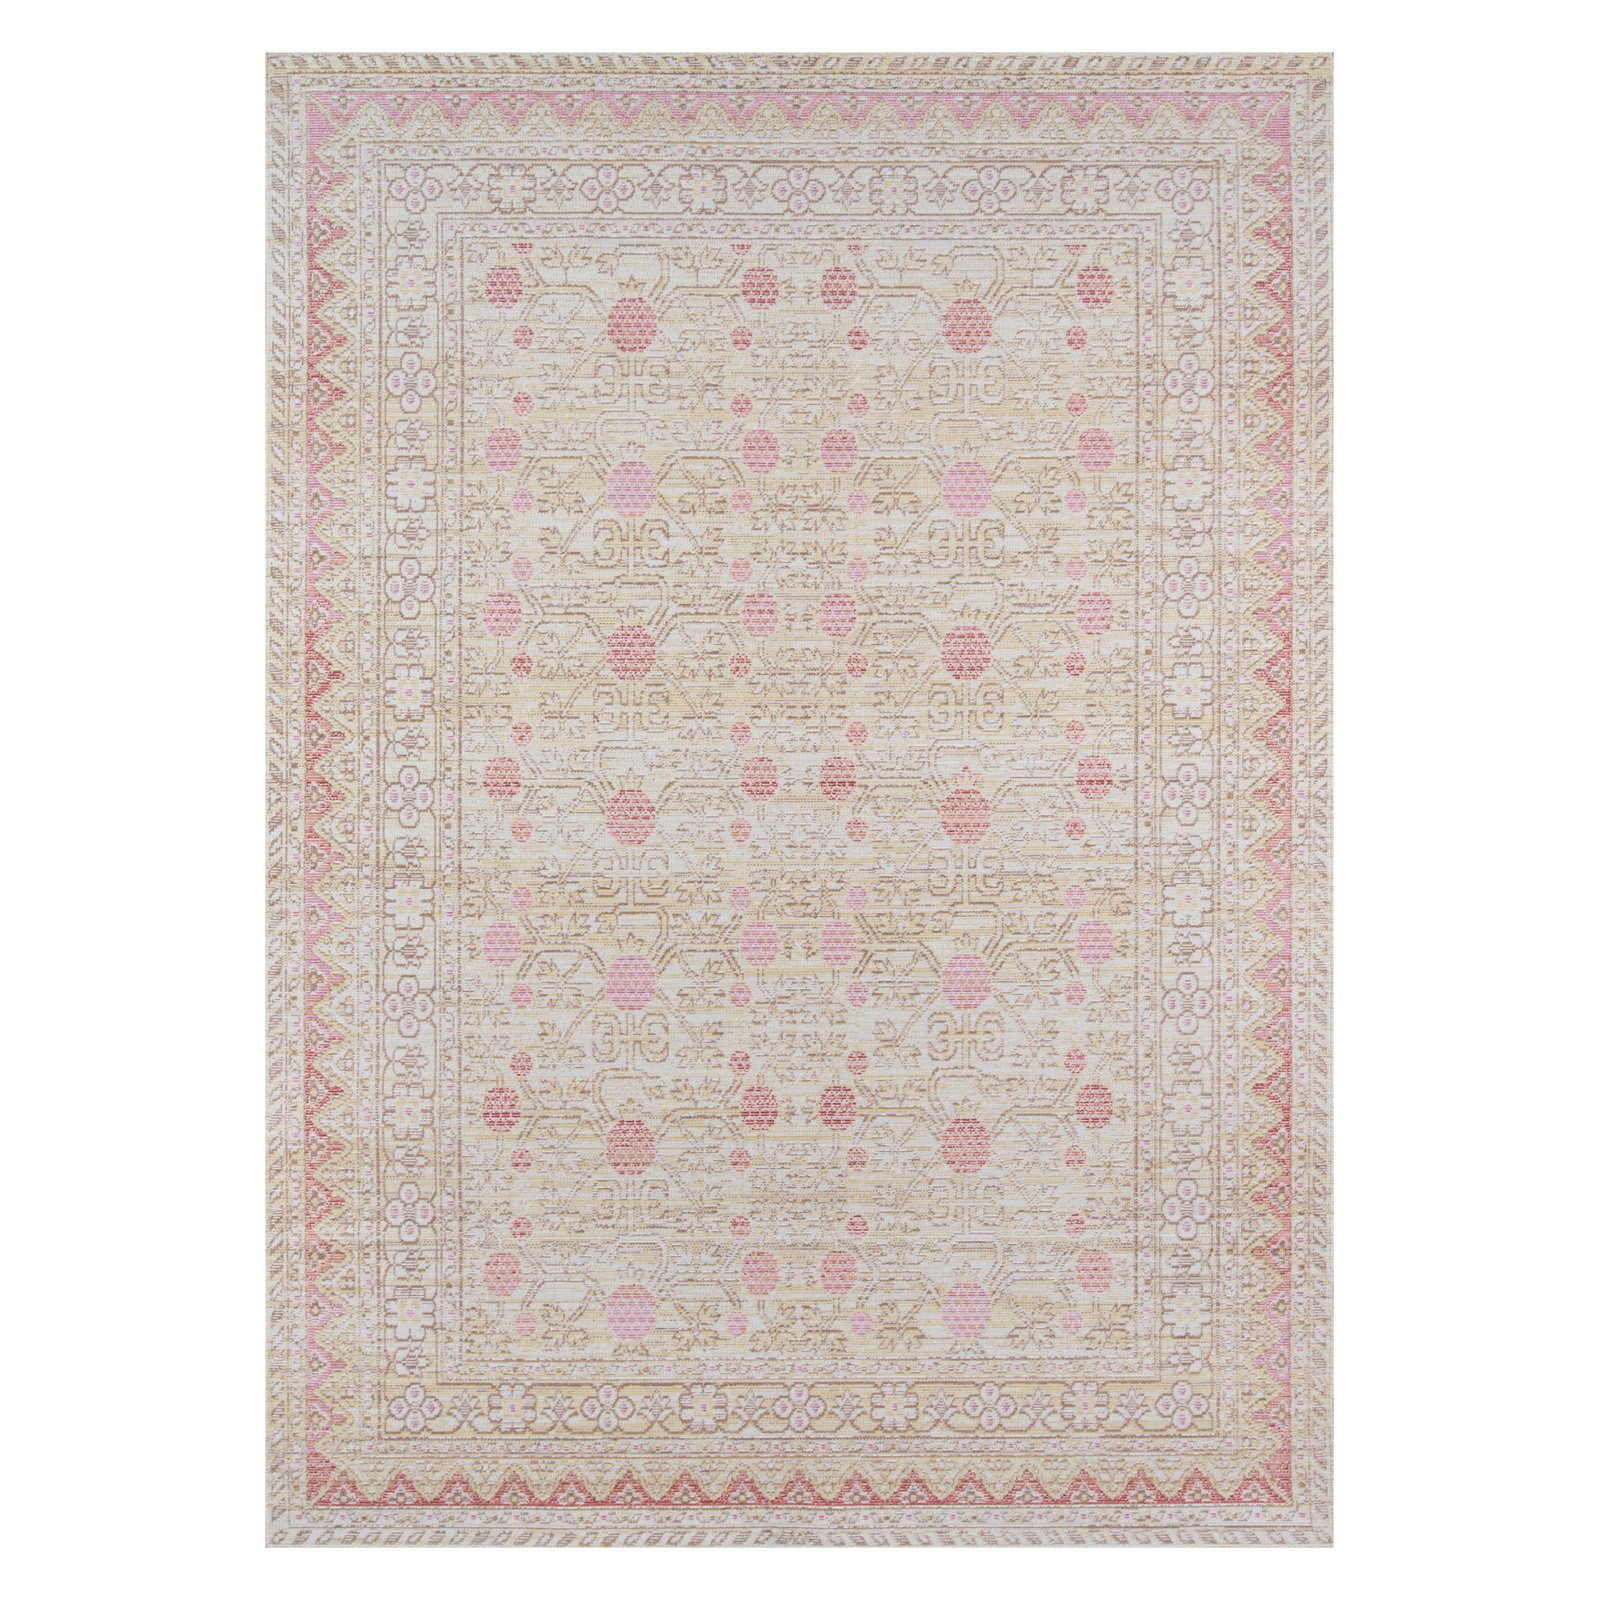 "Momeni Isabella Polyester Machine Made Pink Area Rug 7'10"" X 10'6"""